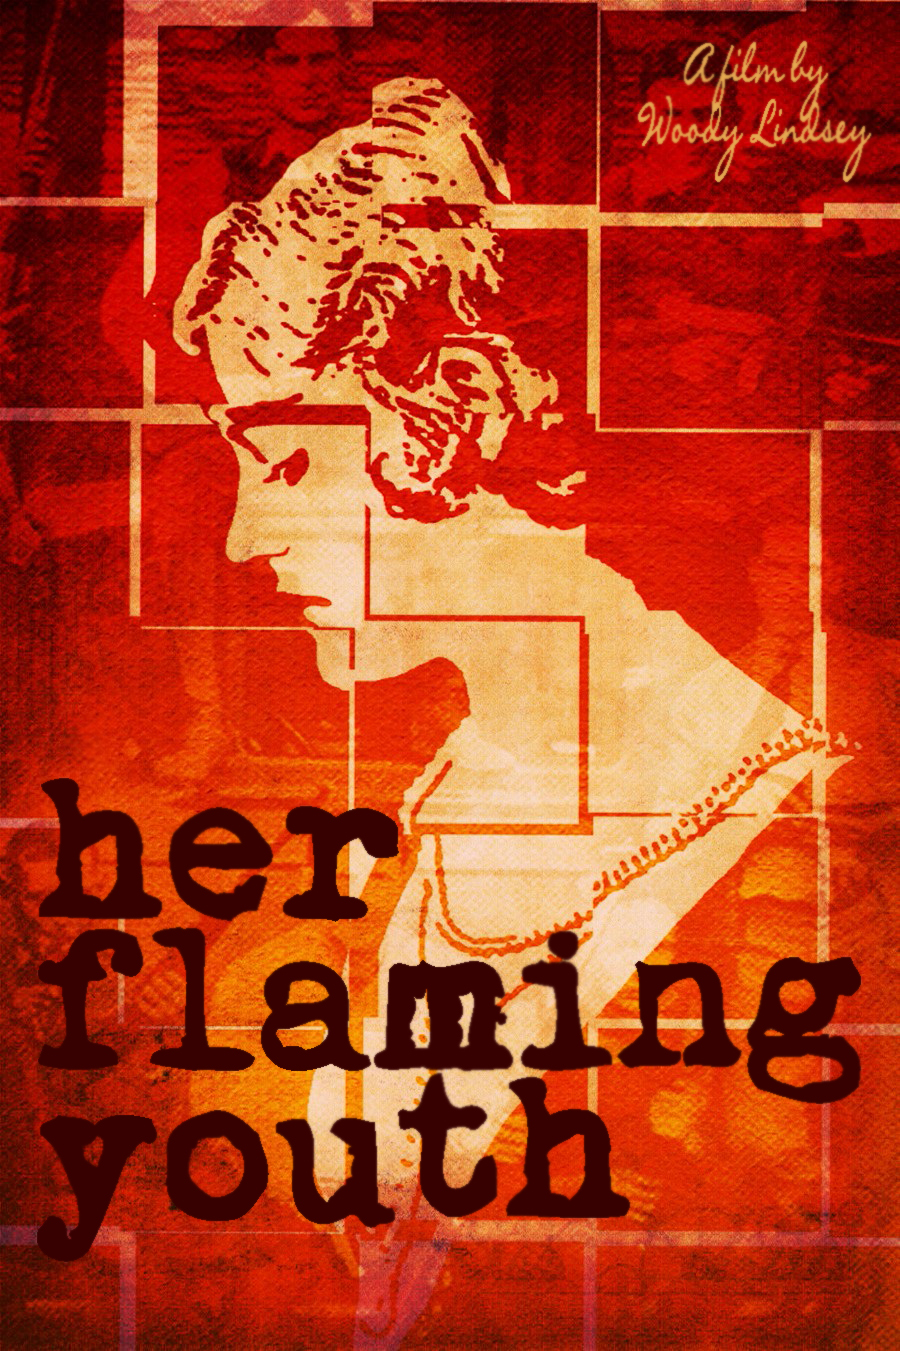 Her Flaming Youth vers. 6 by riogirl9909